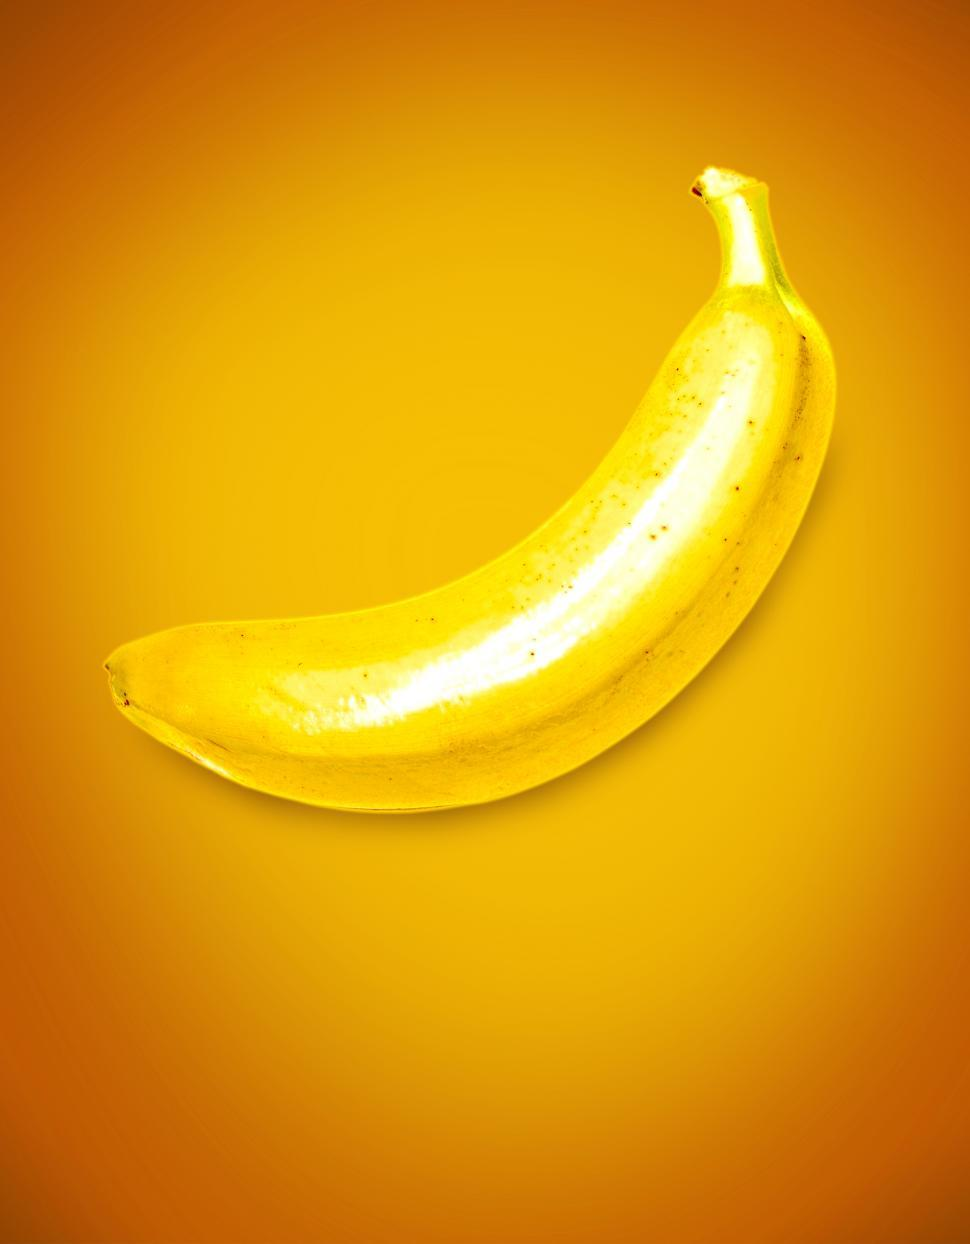 Download Free Stock Photo of Yellow Banana on Yellow Background